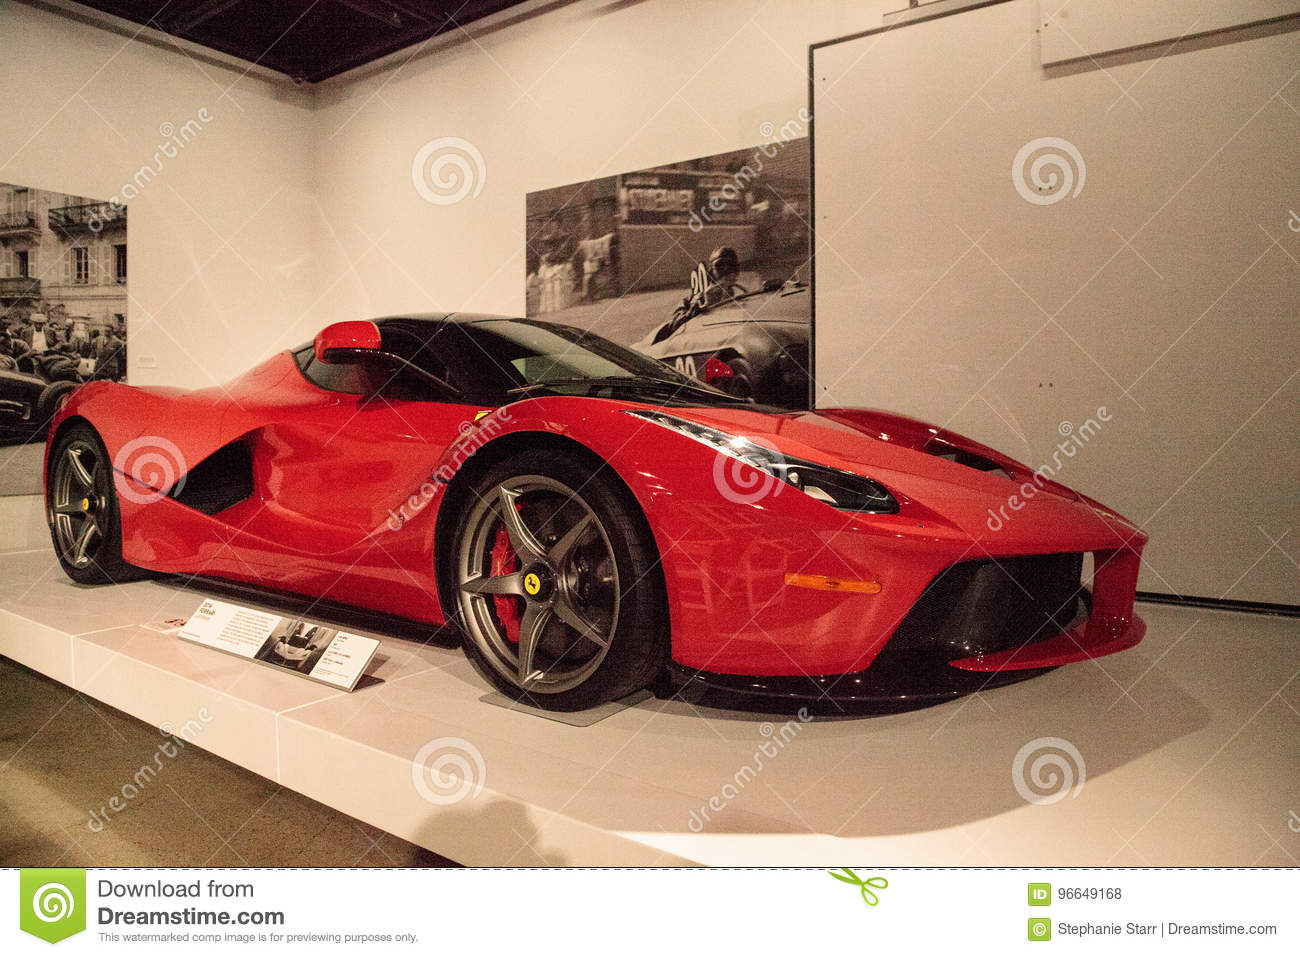 235 Red Laferrari Photos Free Royalty Free Stock Photos From Dreamstime